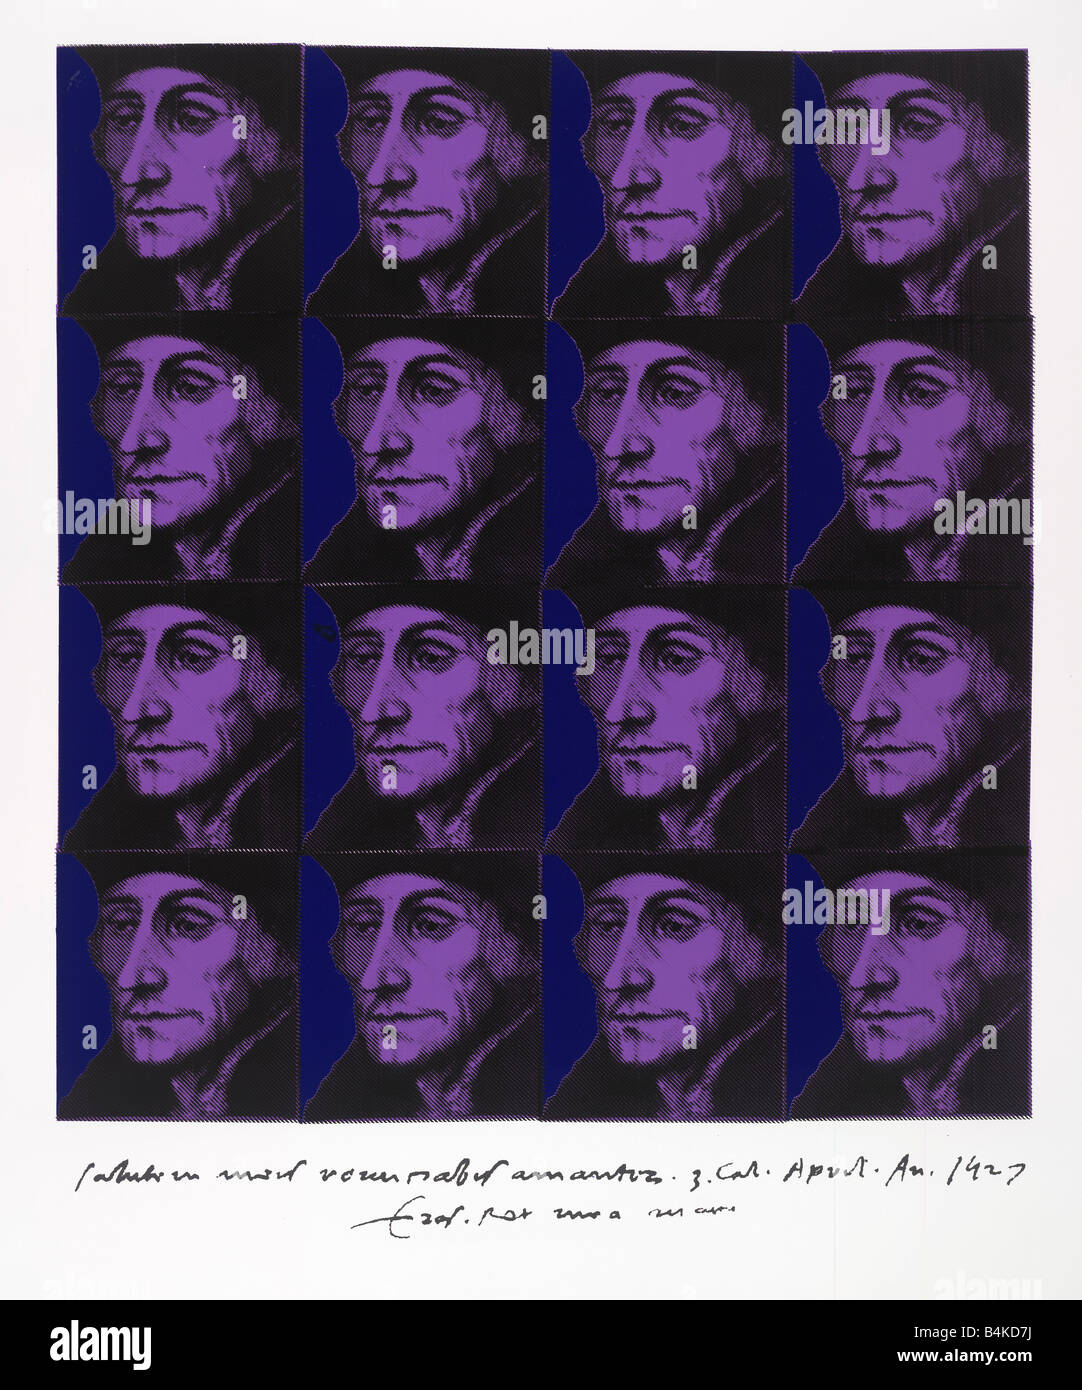 Desiderius Erasmus Dutch Renaissance humanist1469 -1536, silkscreen in multi print, made of a painting by nick oudshoorn - Stock Image